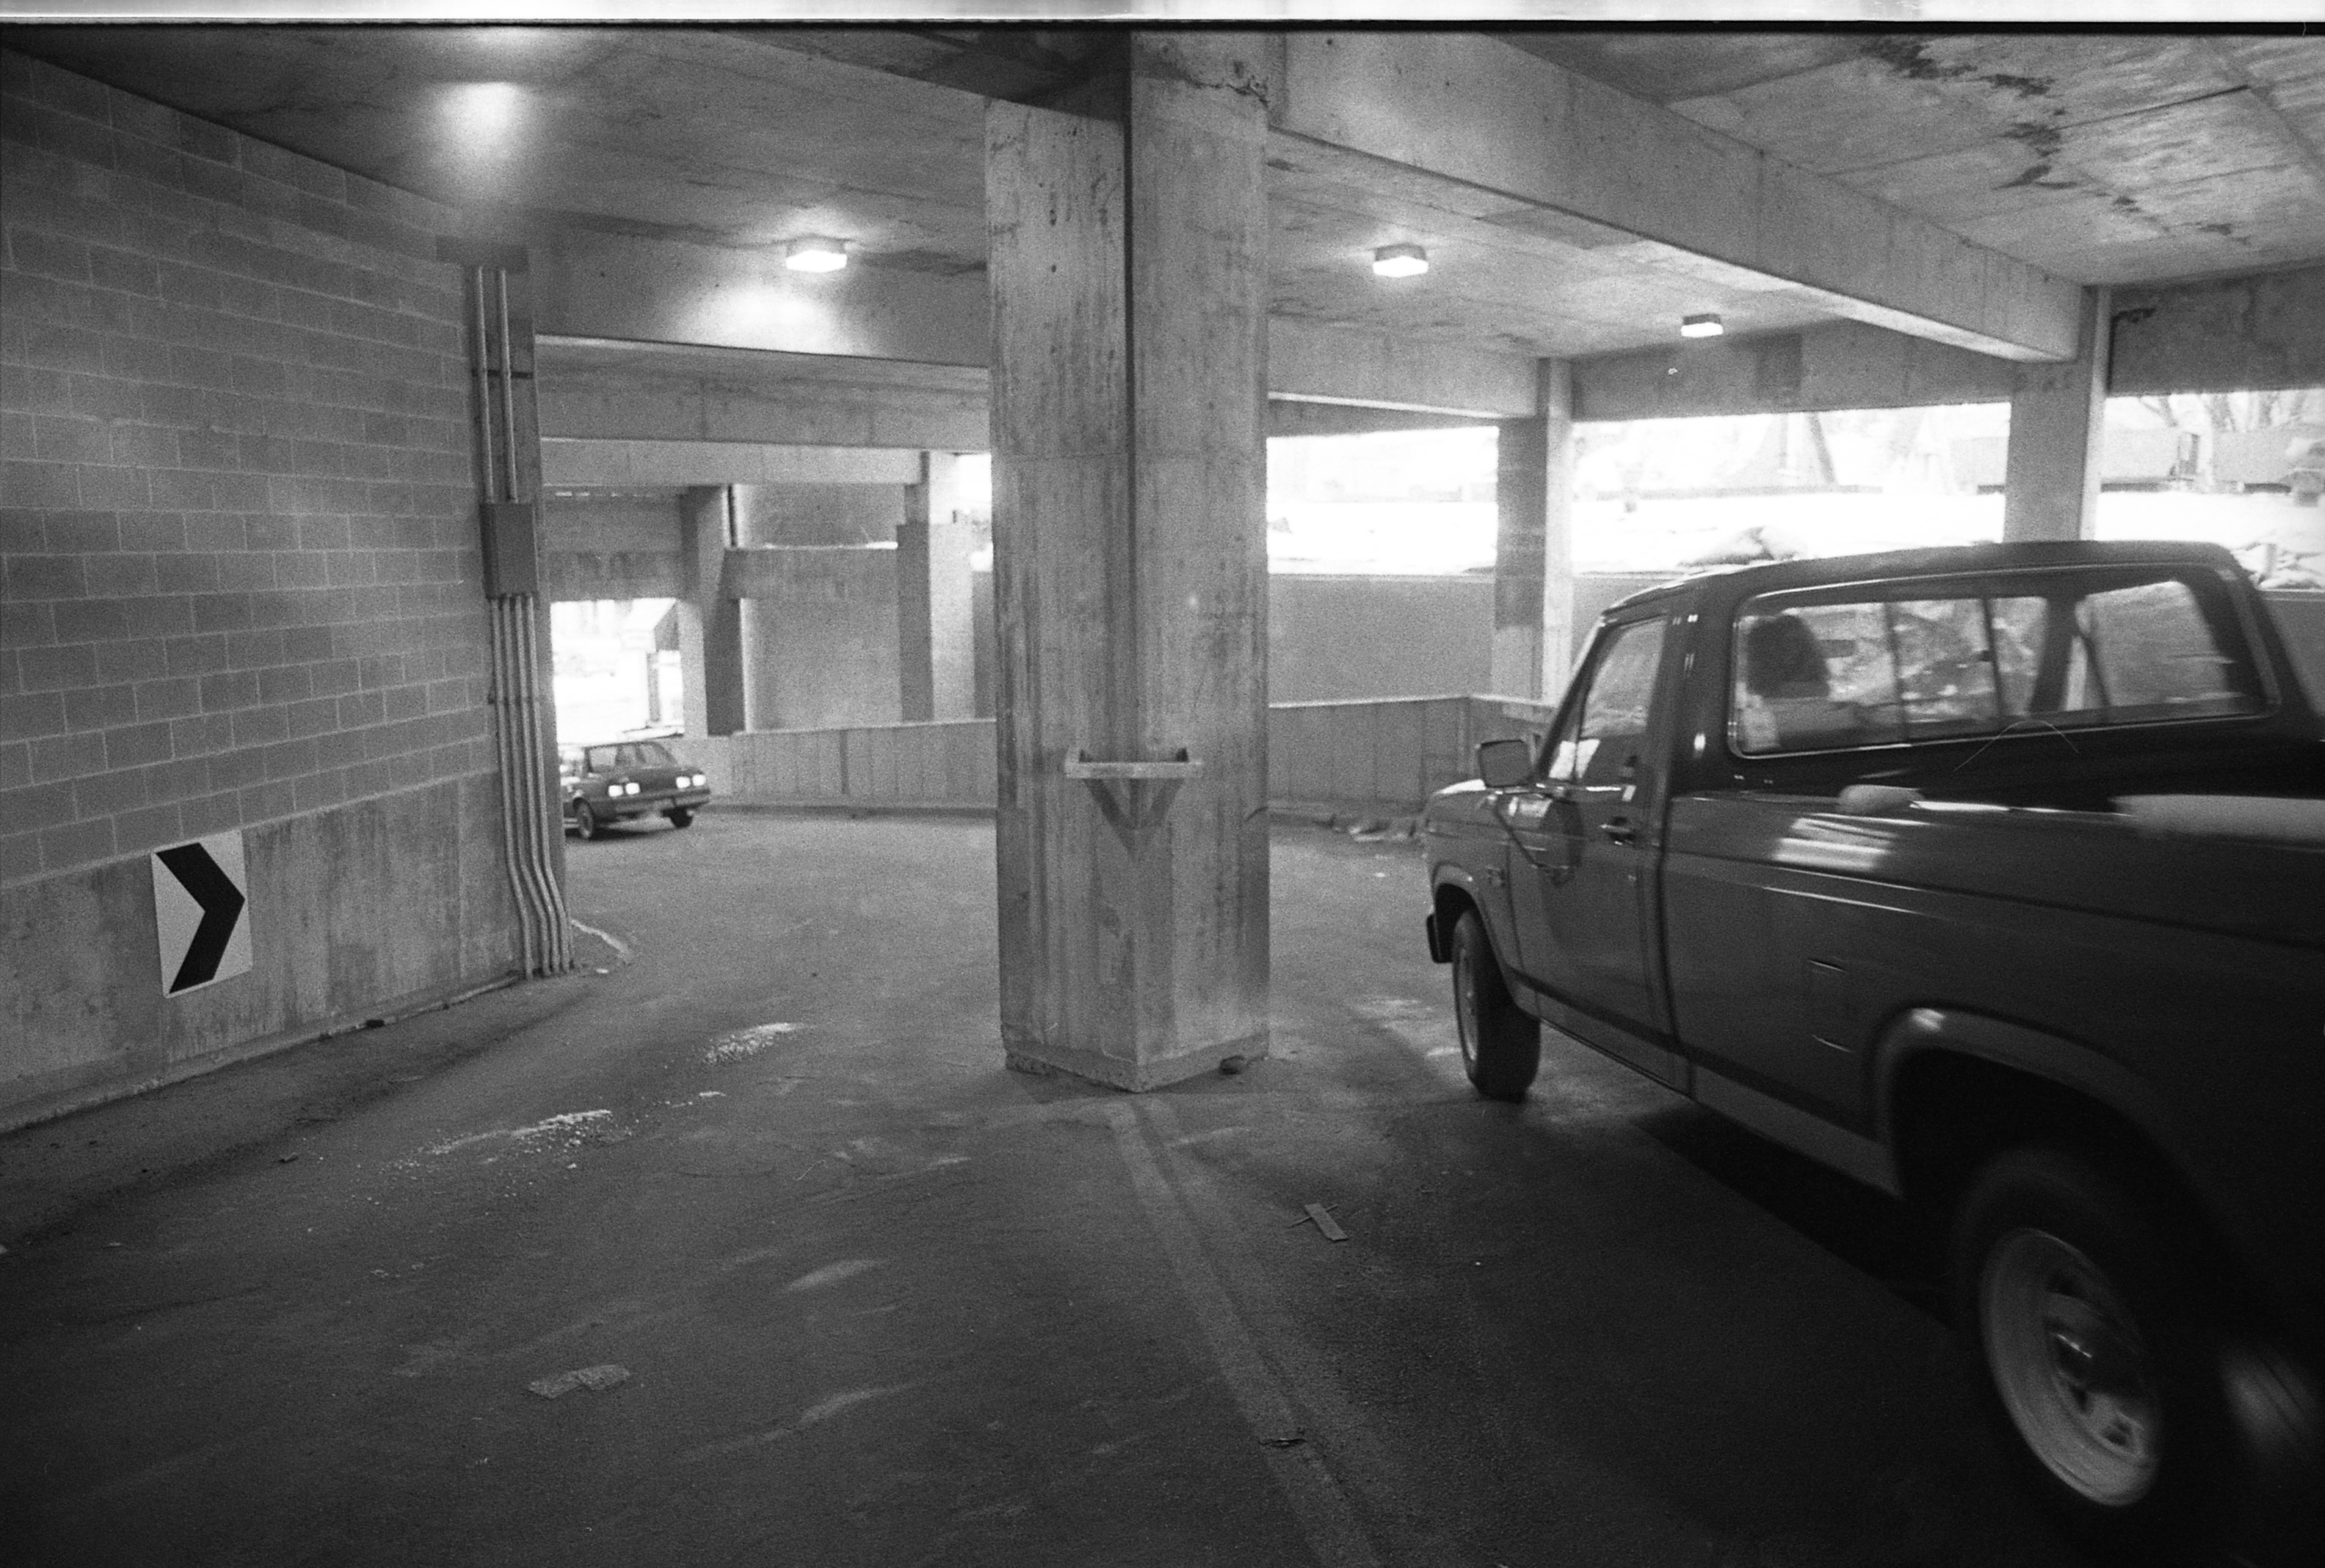 Parking Structure At Tally Hall, March 1986 image